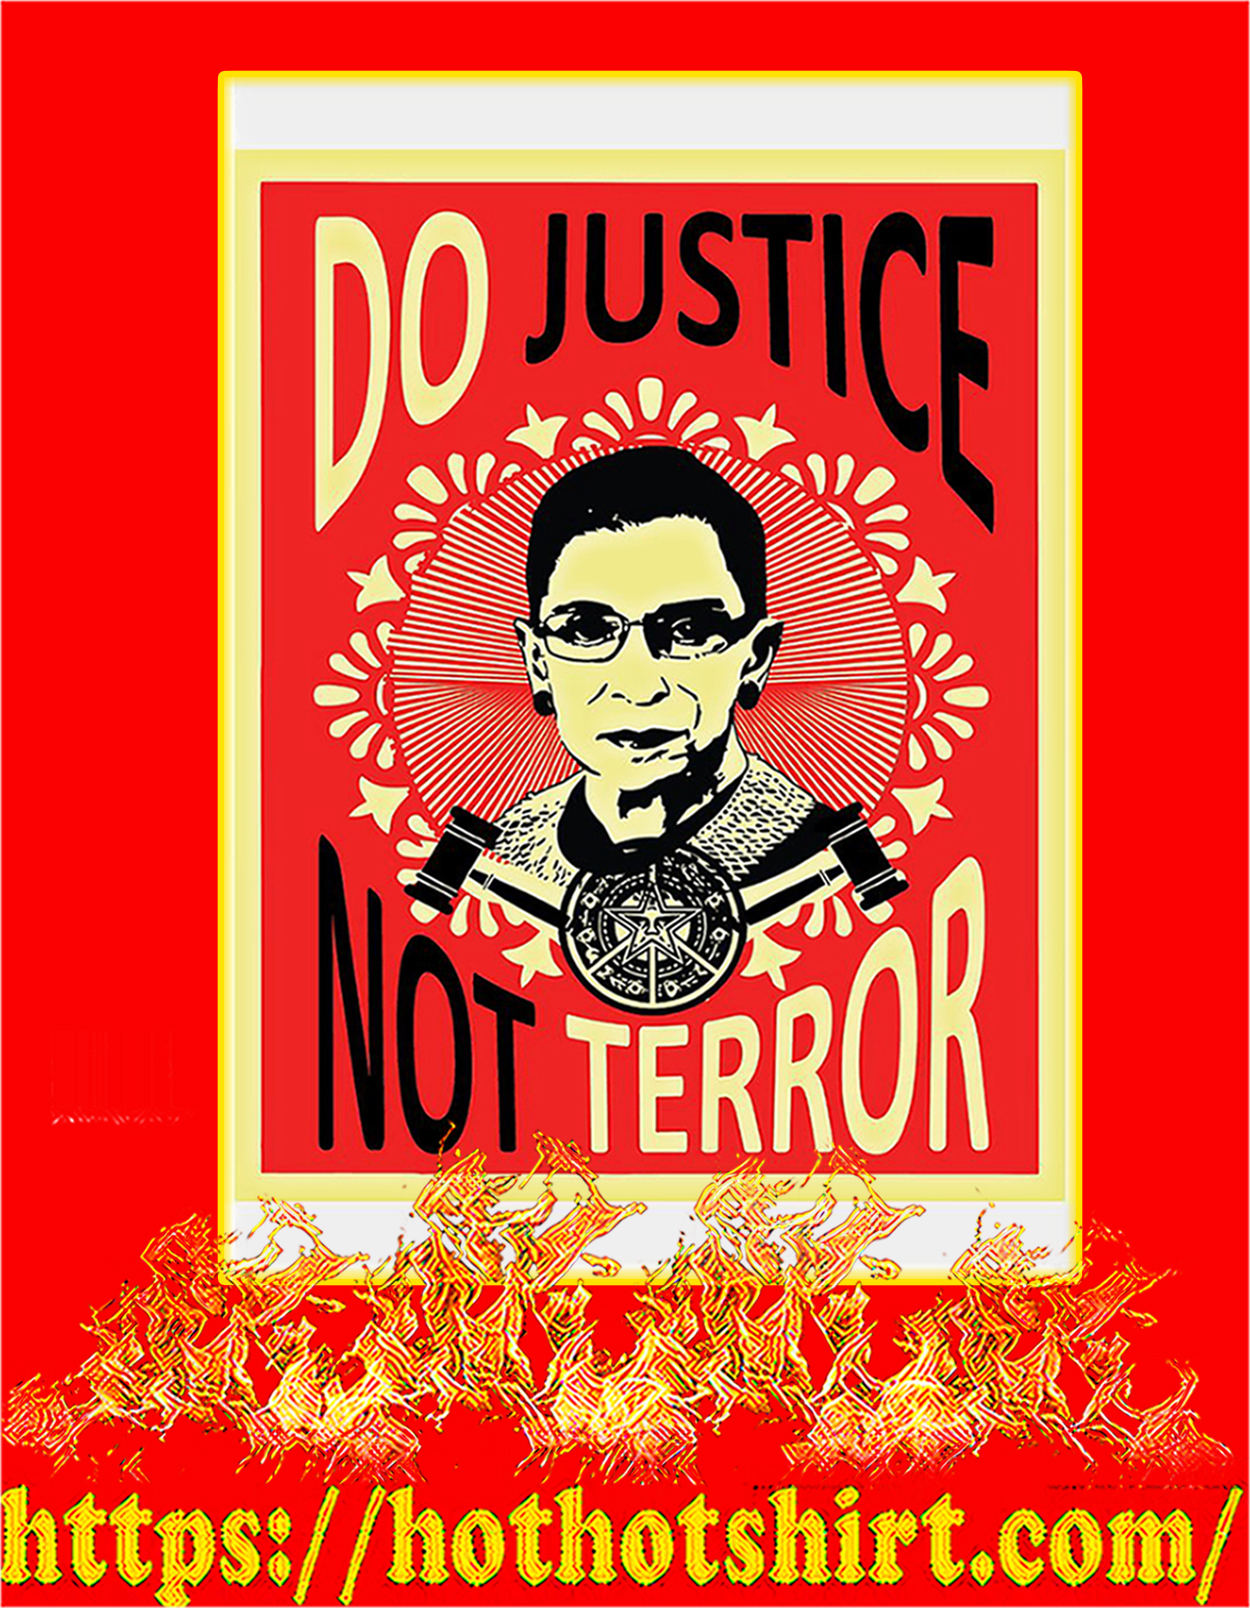 Do justice not terror Ruth bader ginsburg poster - A3